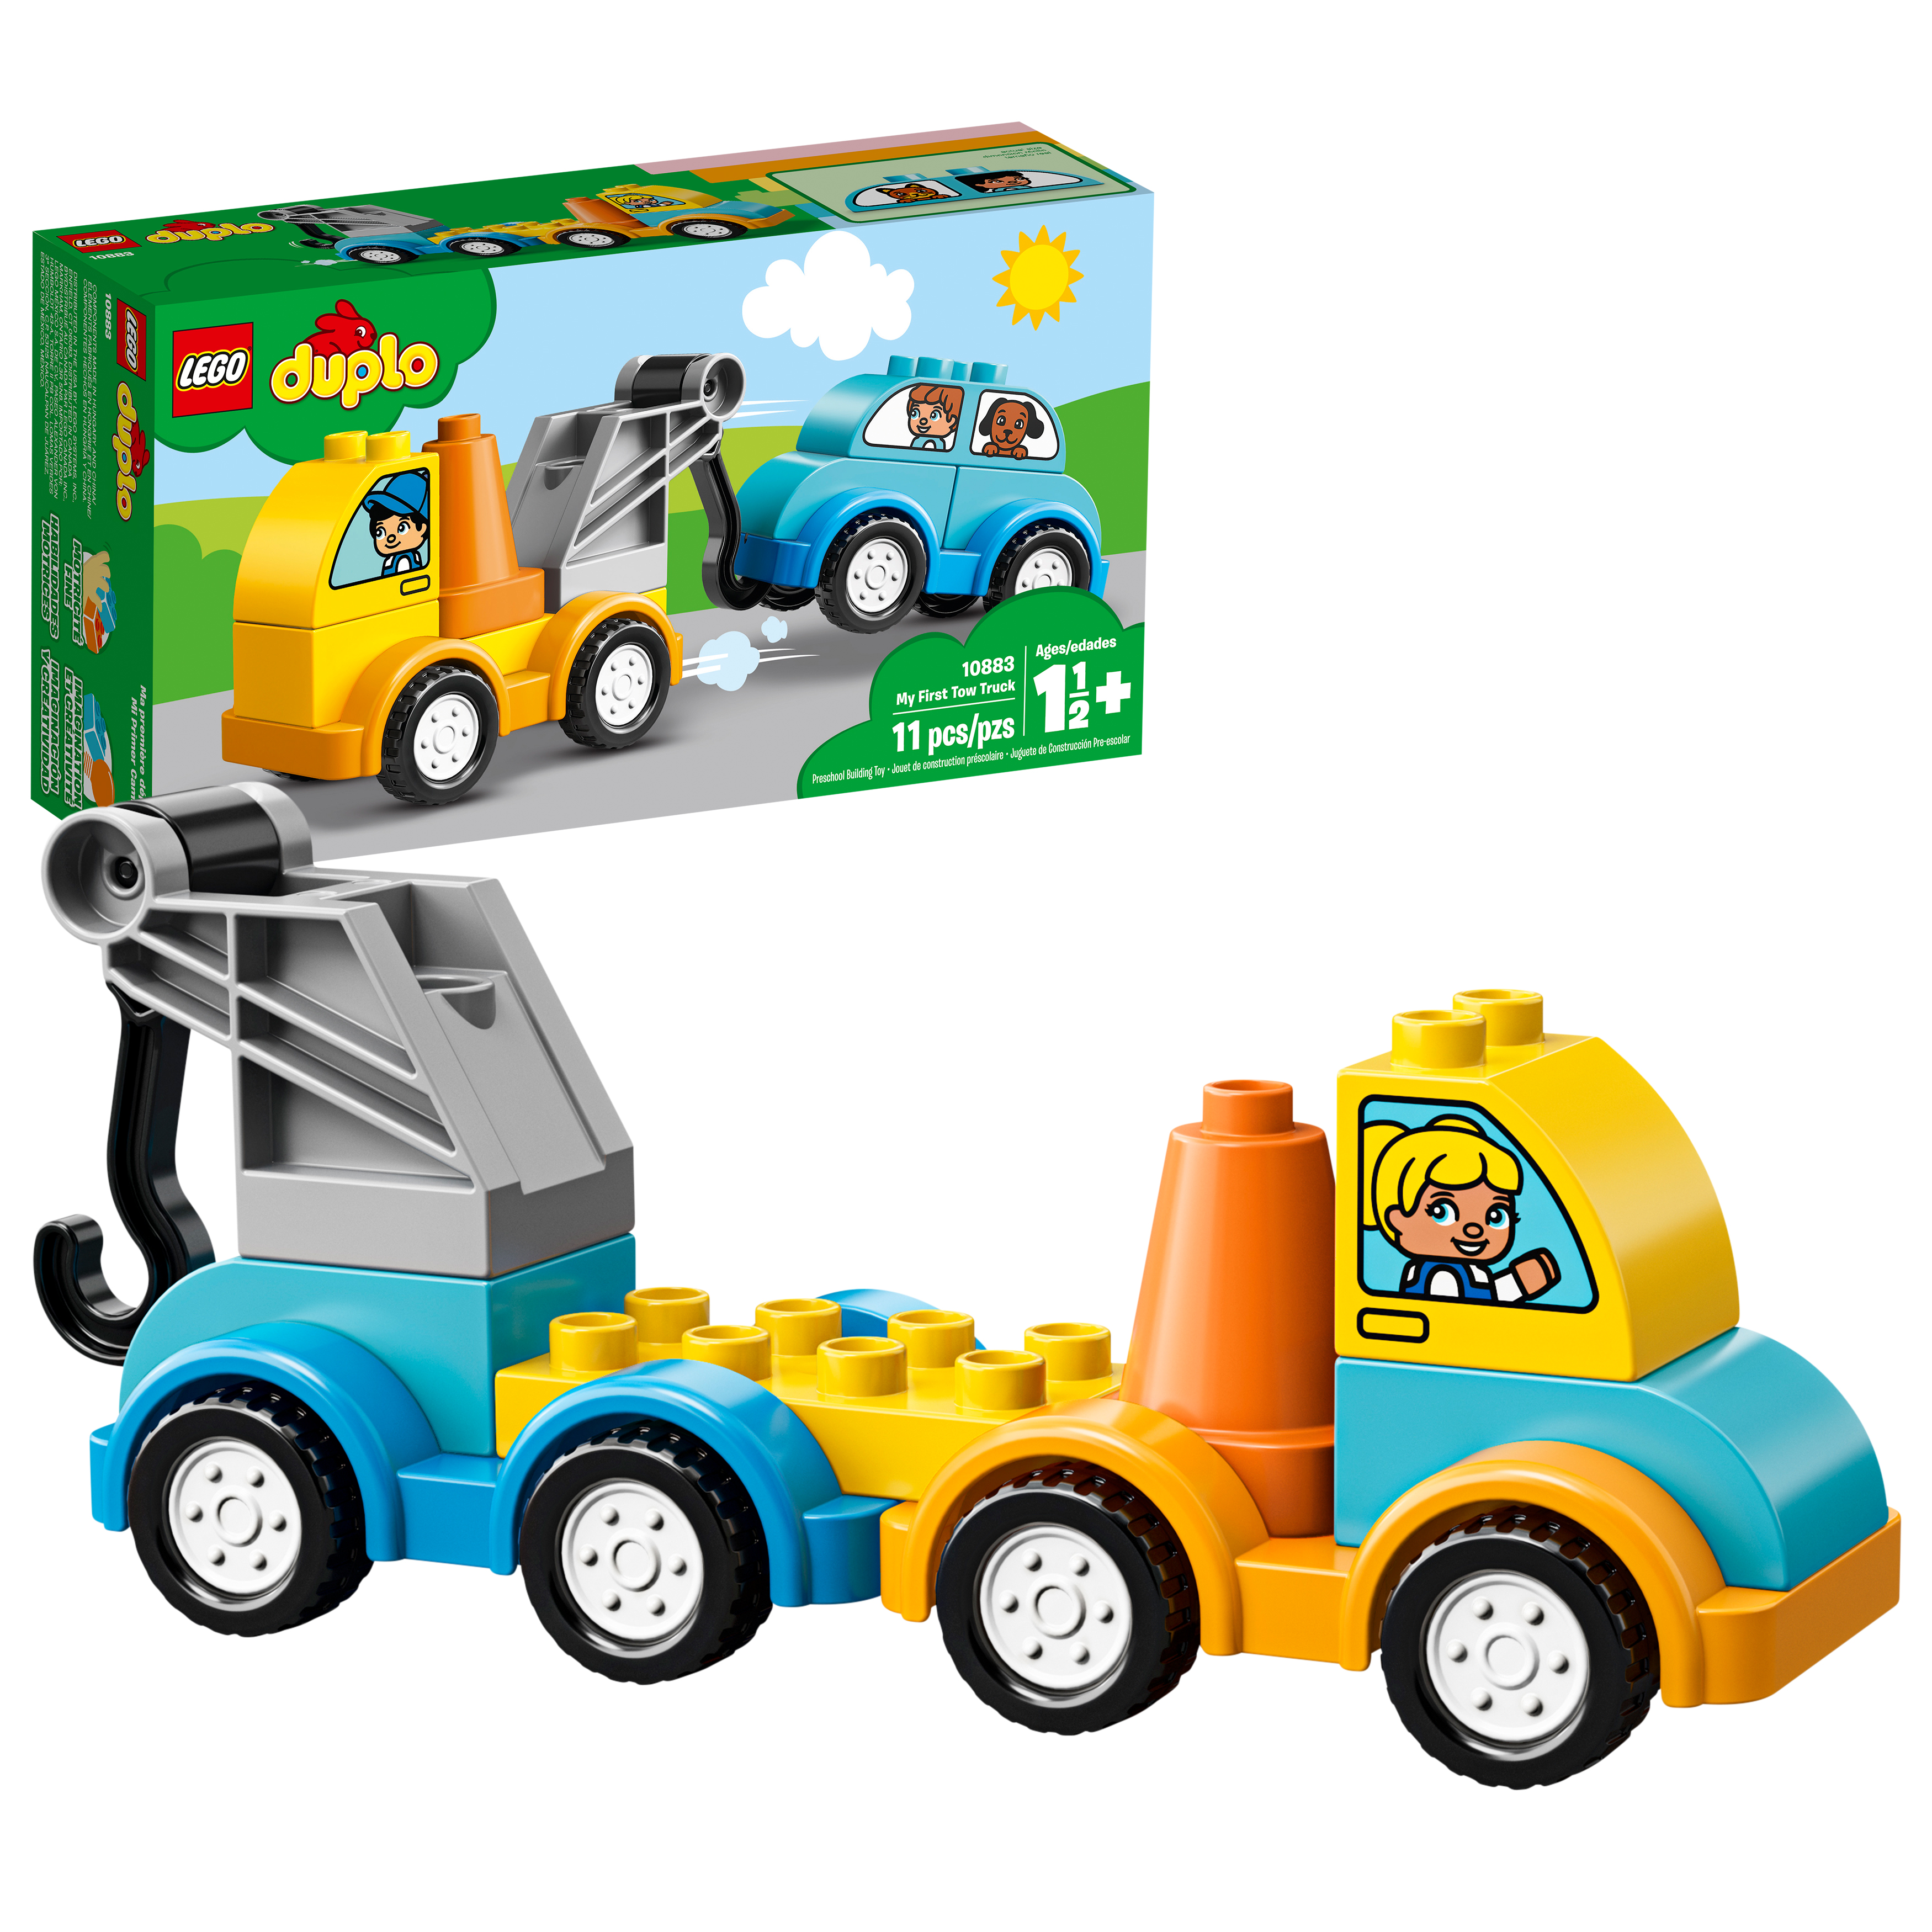 Lego Duplo My First Tow Truck 10883 Walmart Com